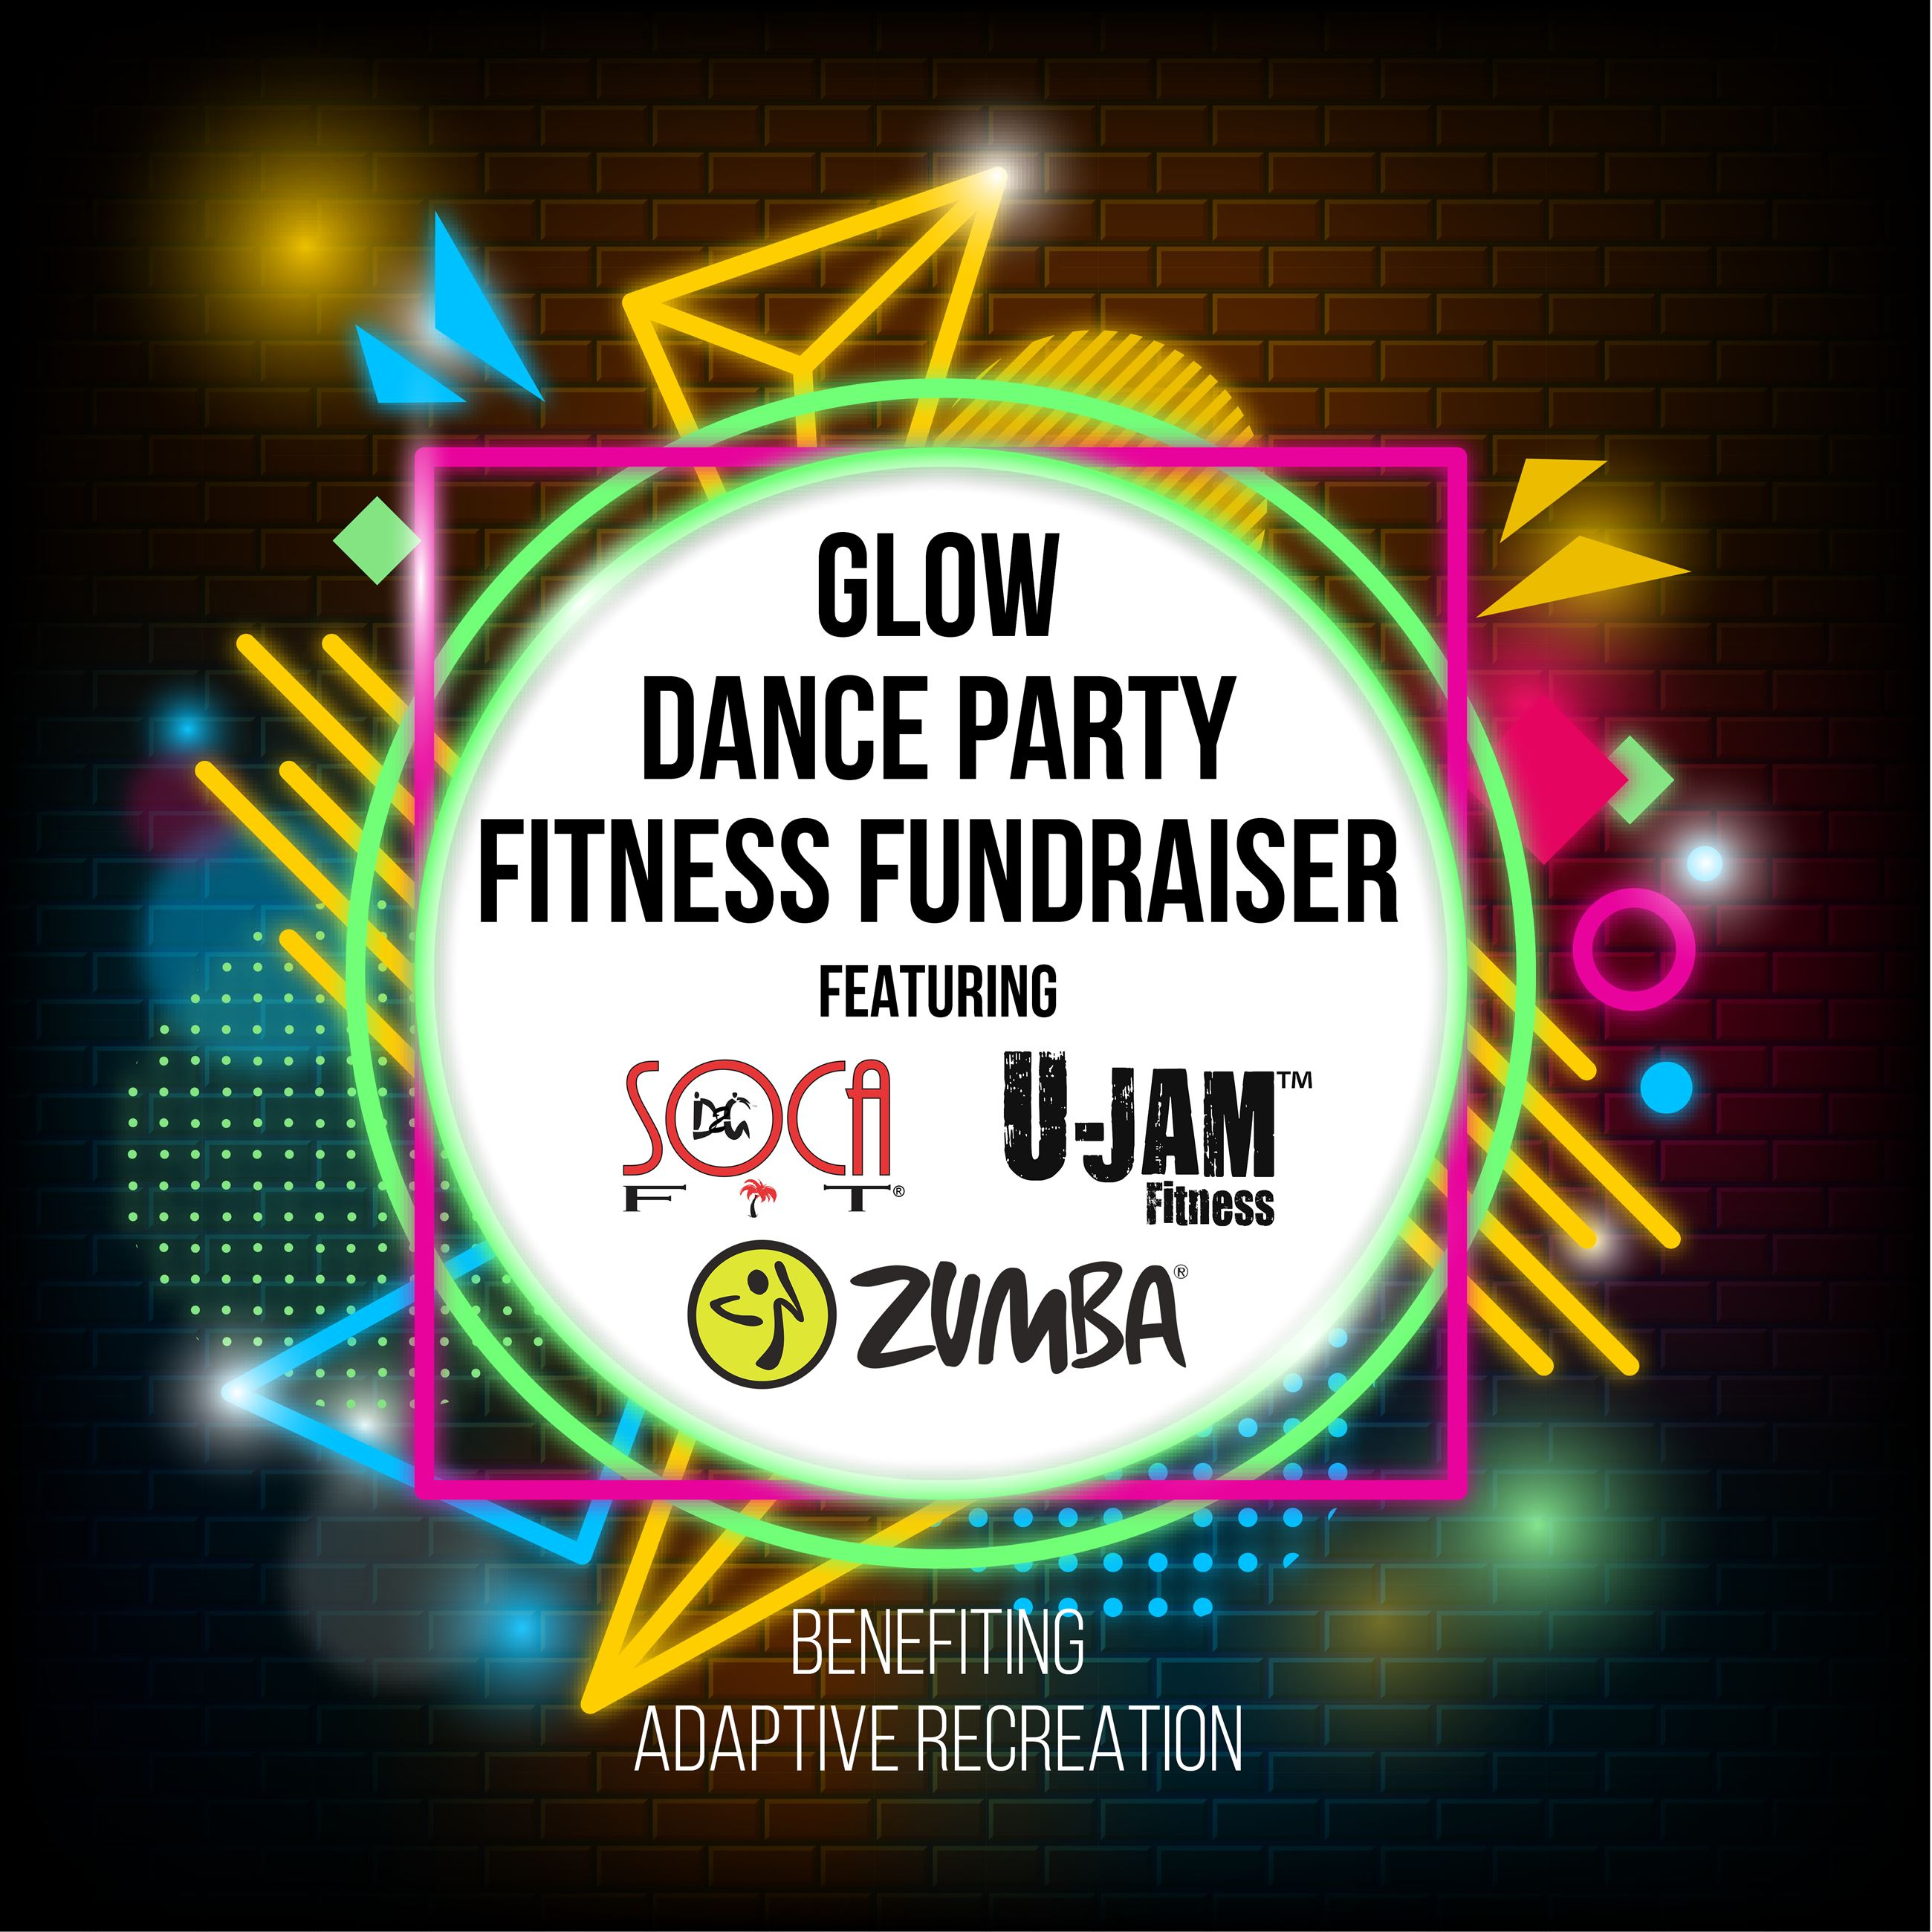 Glow Dance Party Fitness Fundraiser_Digital SMG